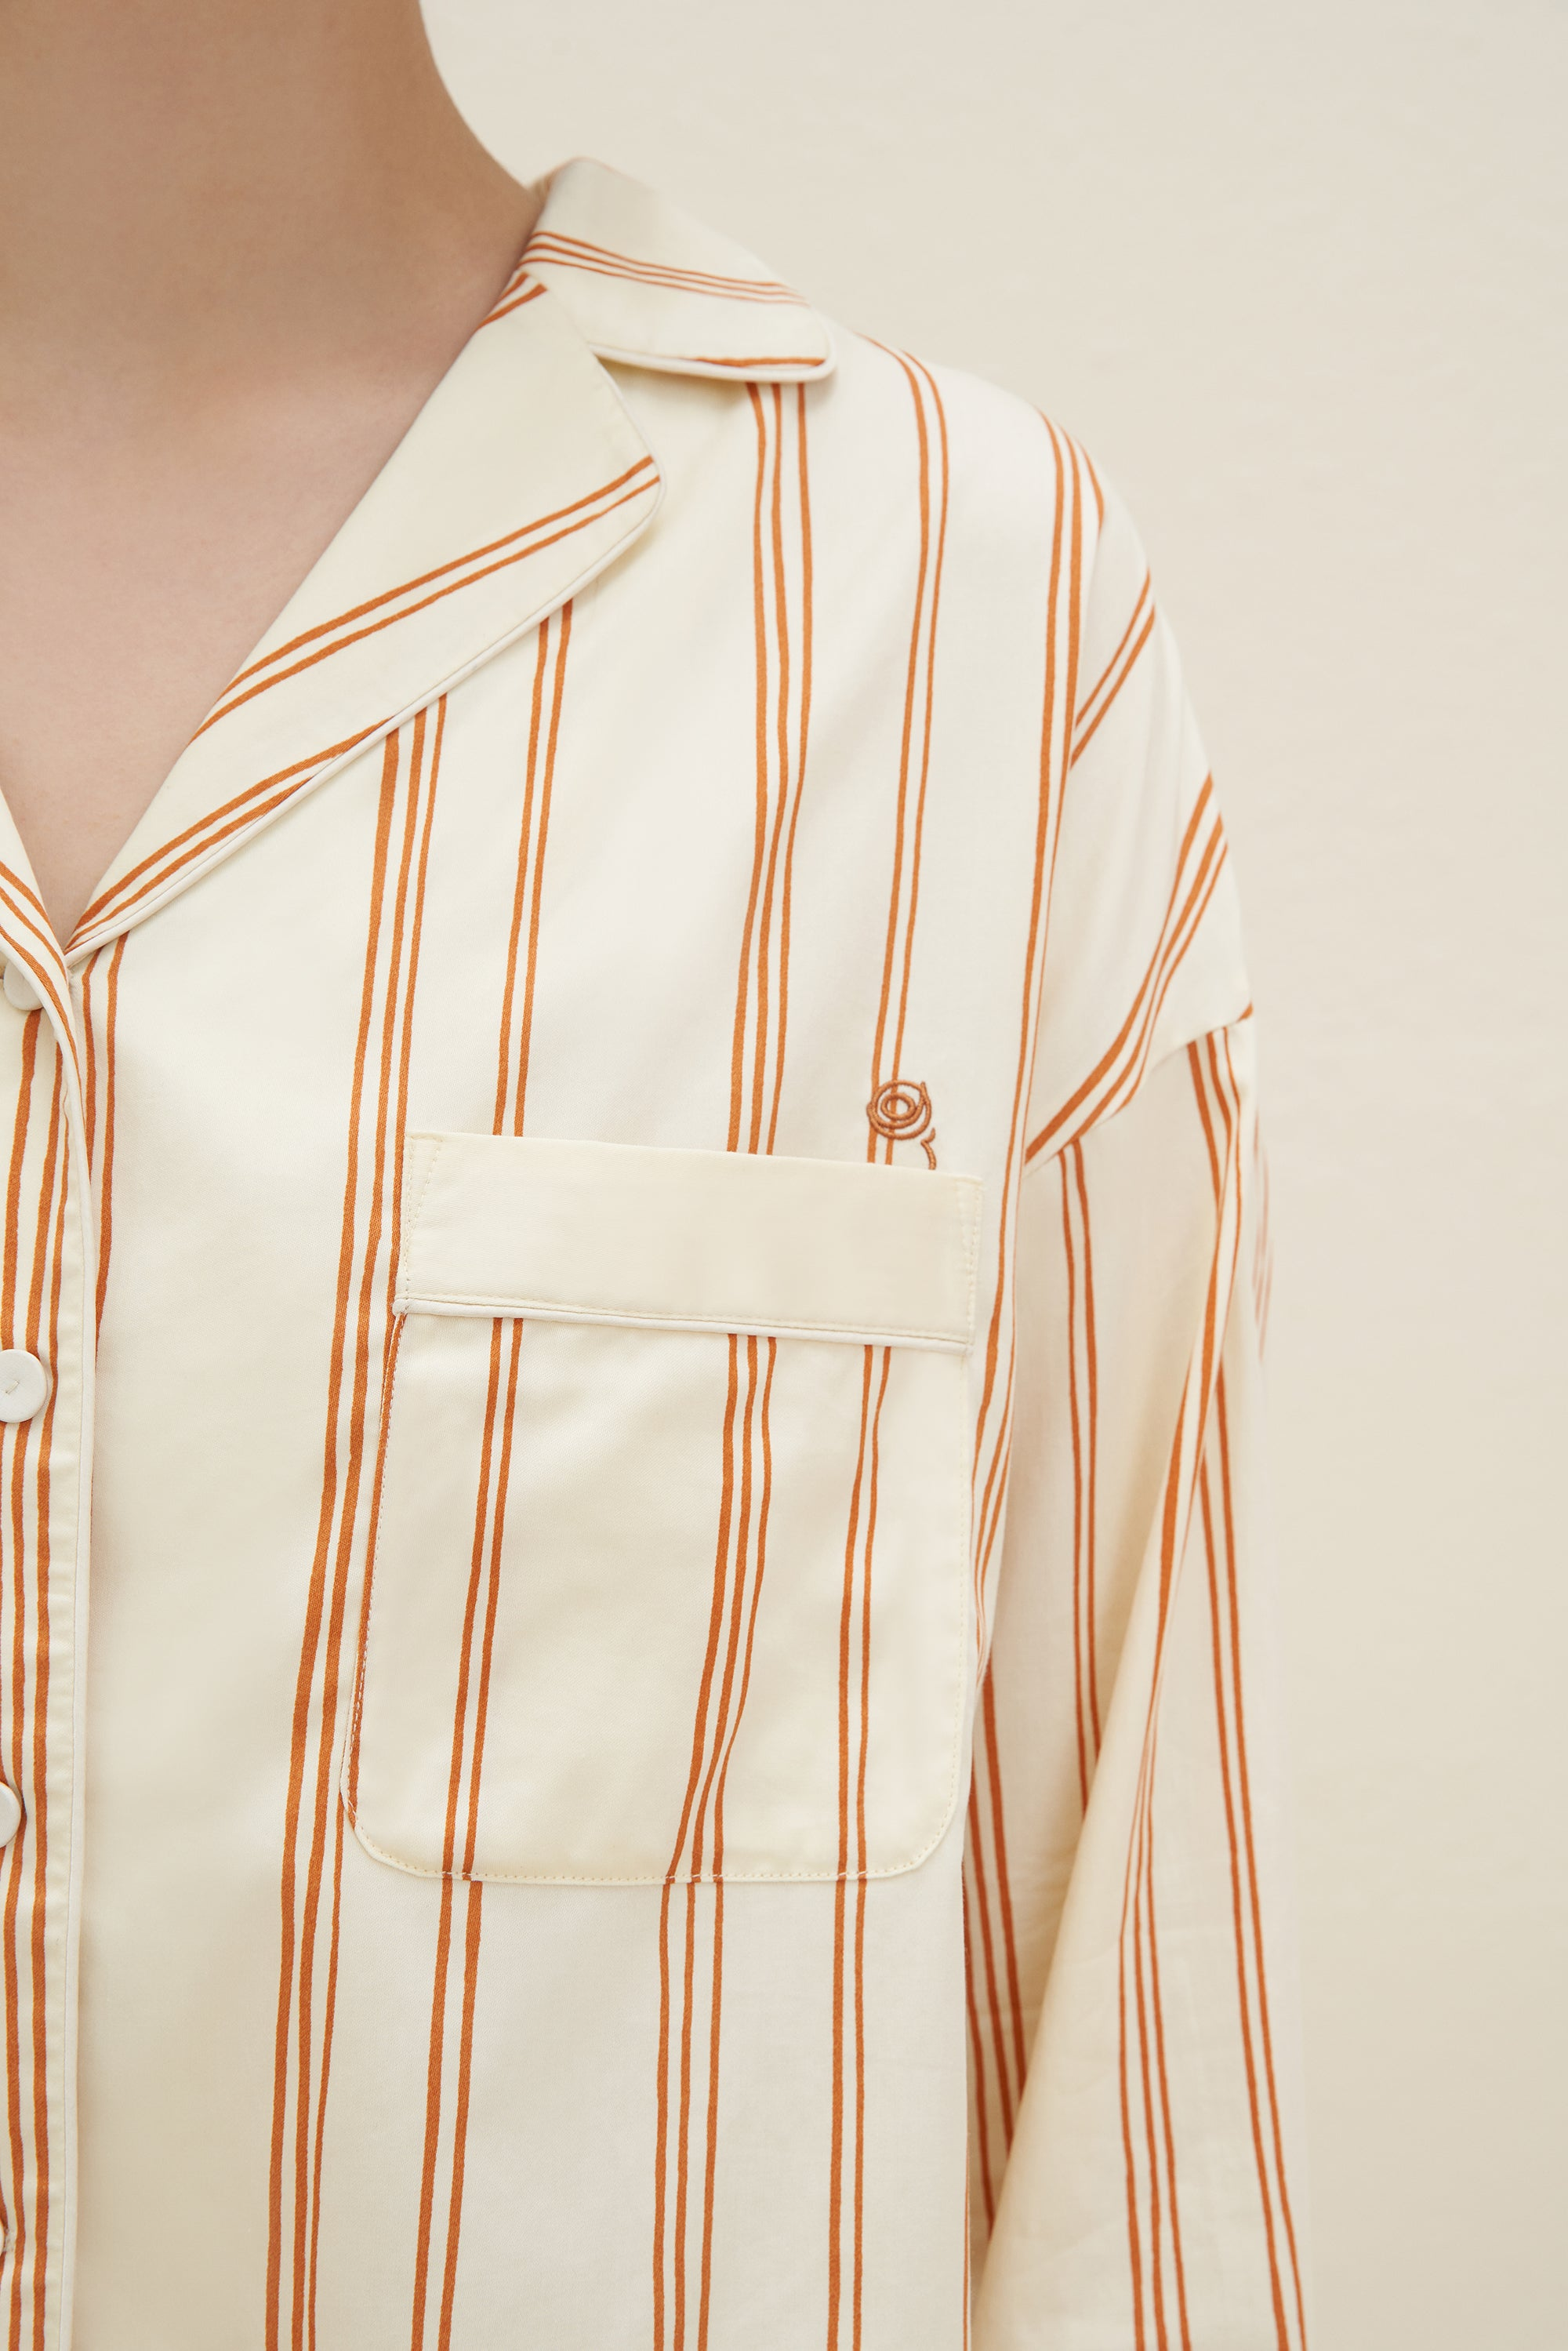 Model wearing NEIWAI's Classic Embroidered Pajama Shirt in Orange Lattice.